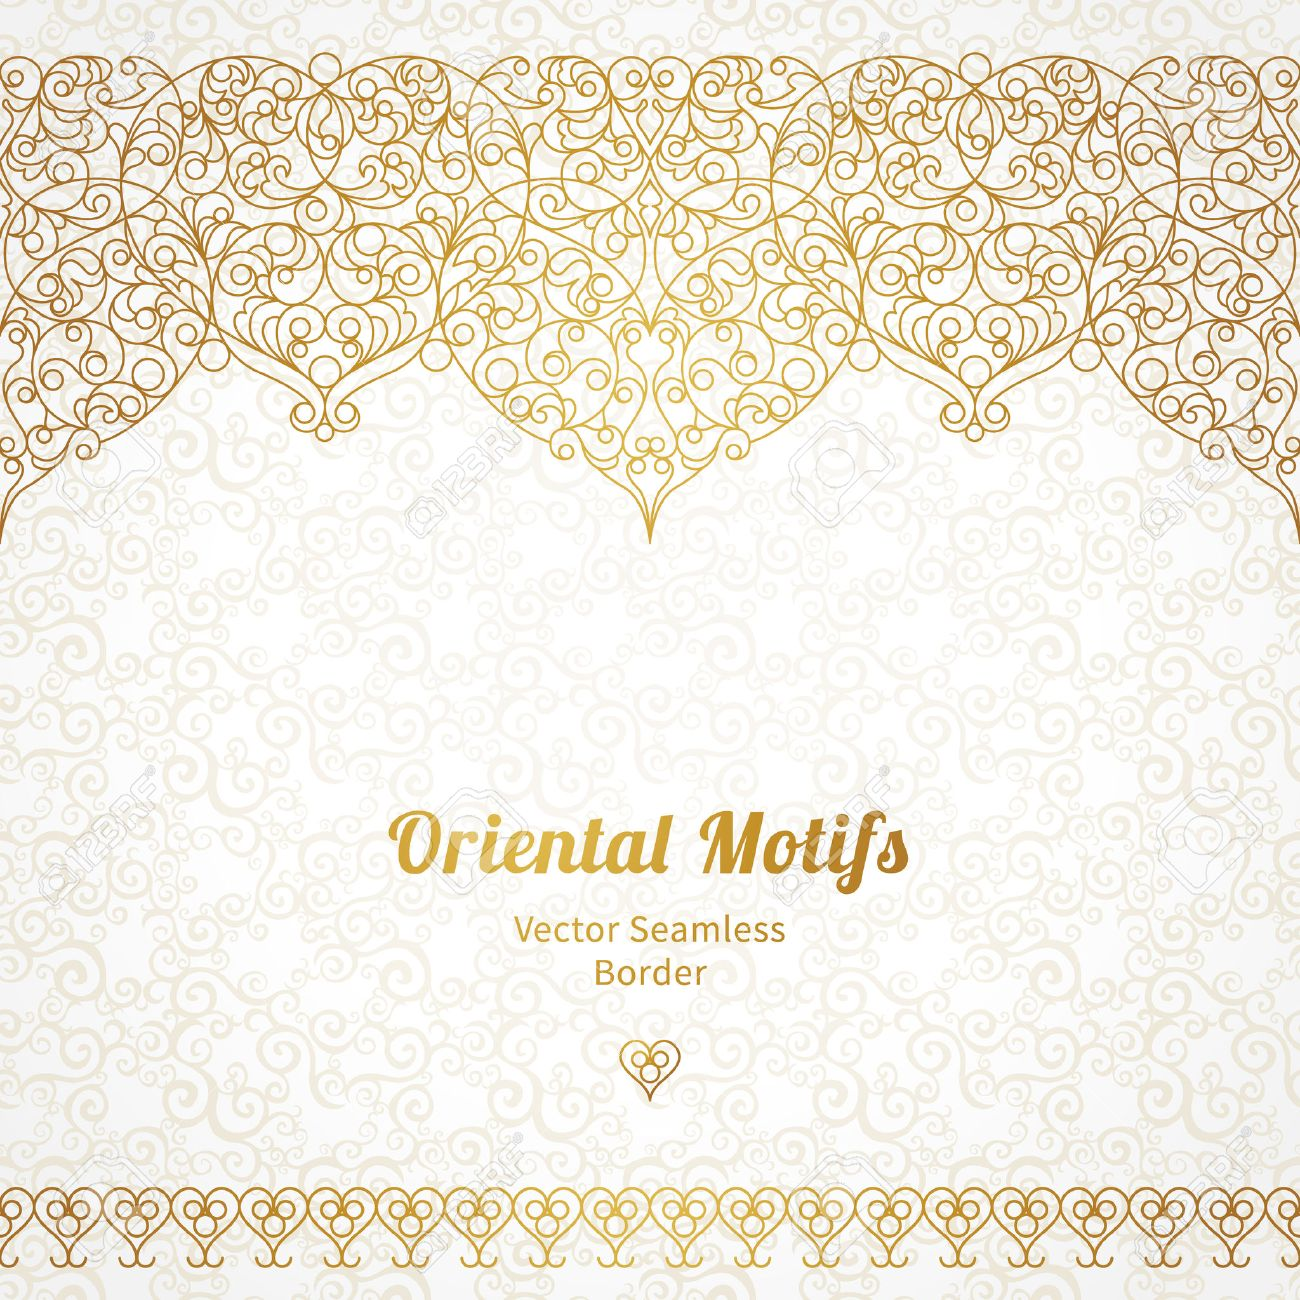 Vector ornate seamless border in Eastern style. Line art element for design, place for text. Ornamental vintage frame for wedding invitations and greeting cards. Traditional gold decor. - 41936241